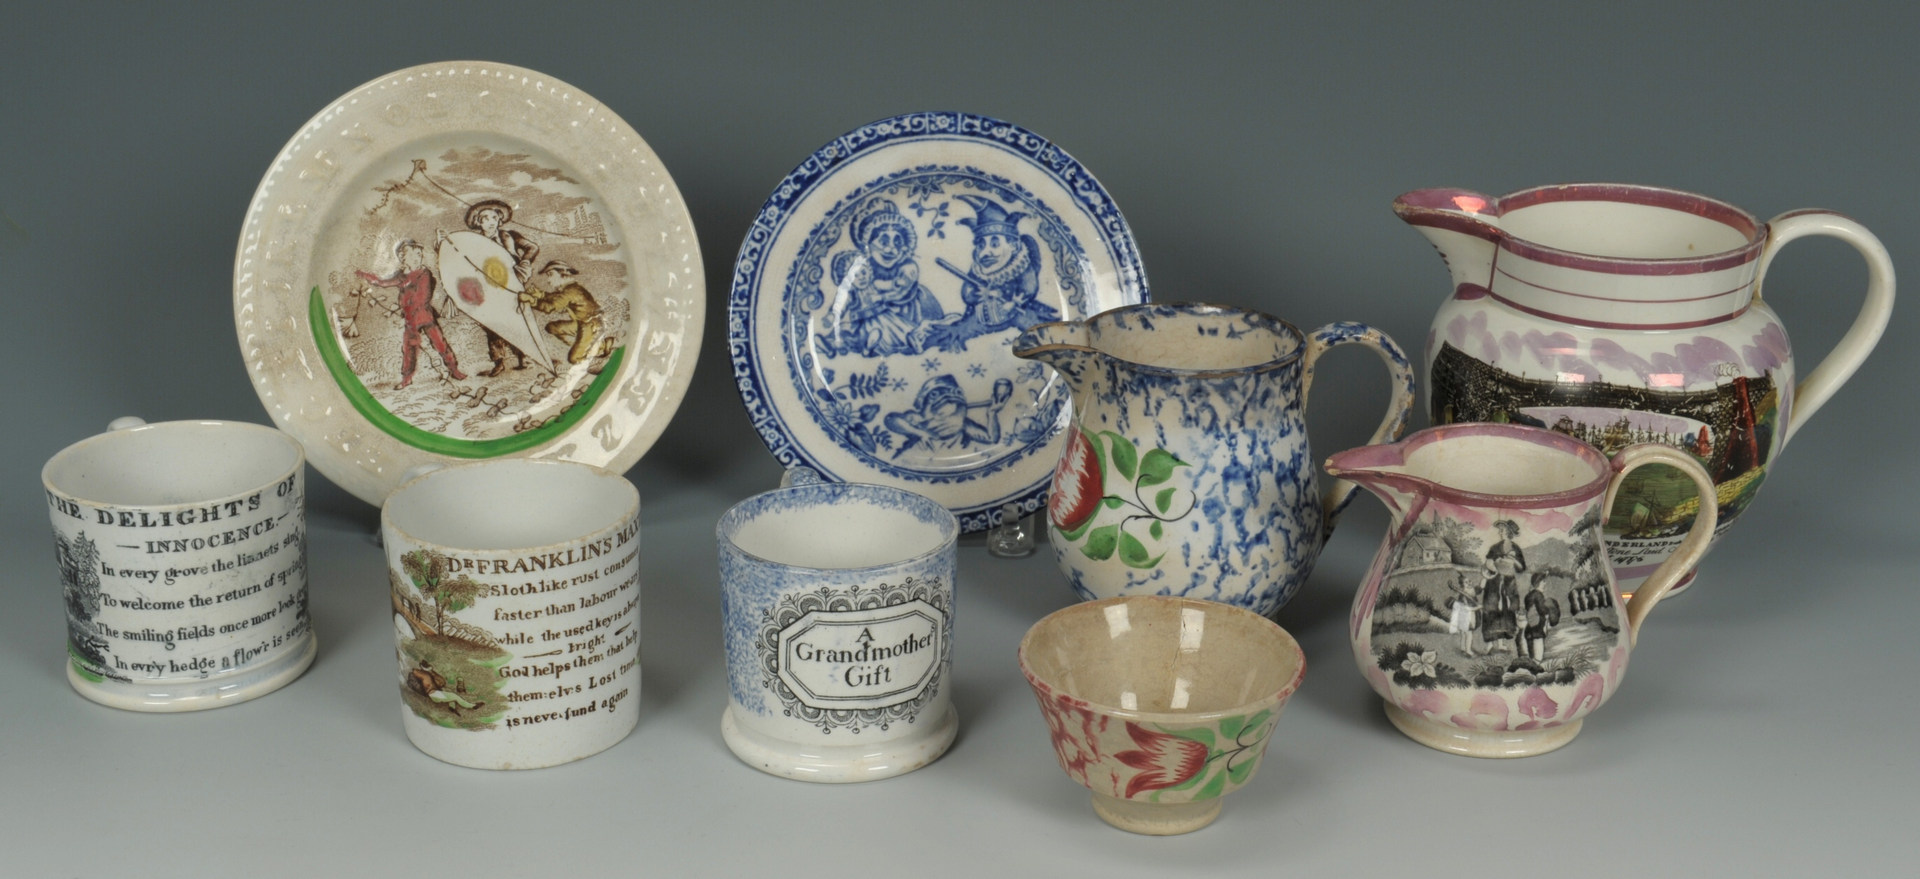 Lot 254: 19th c. ceramics, Sunderland & Spatterware